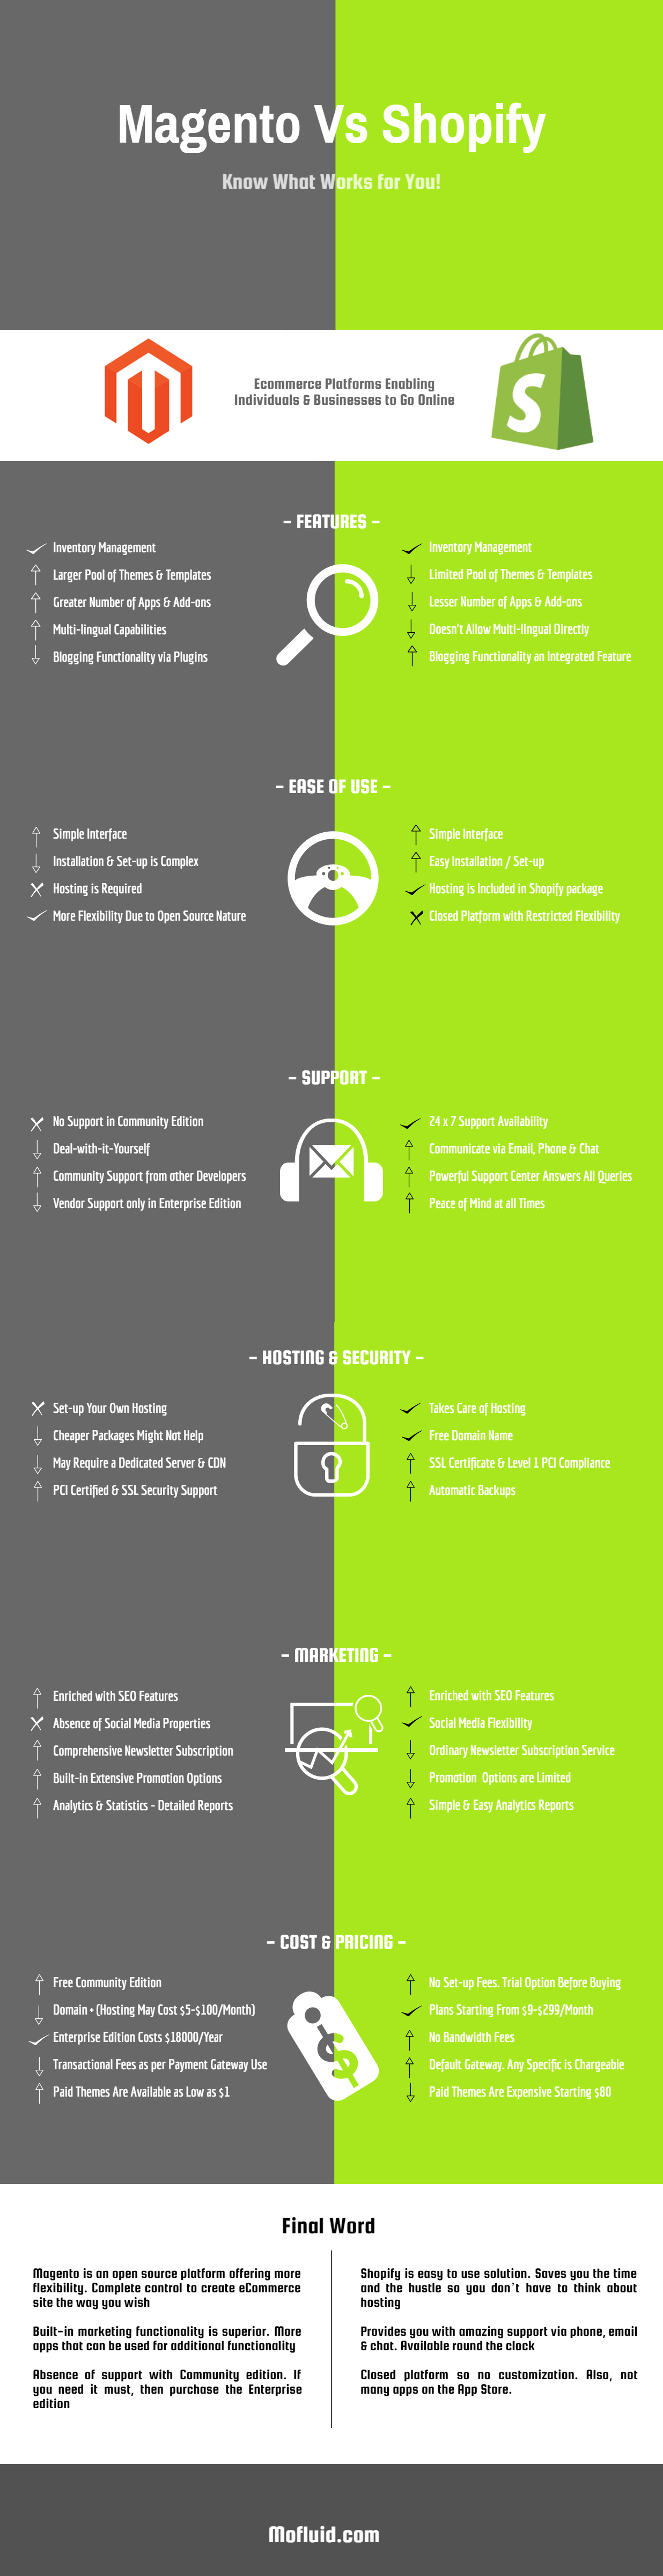 Shopify Vs Magento: Which Ecommerce Option is Best? (Infographic)